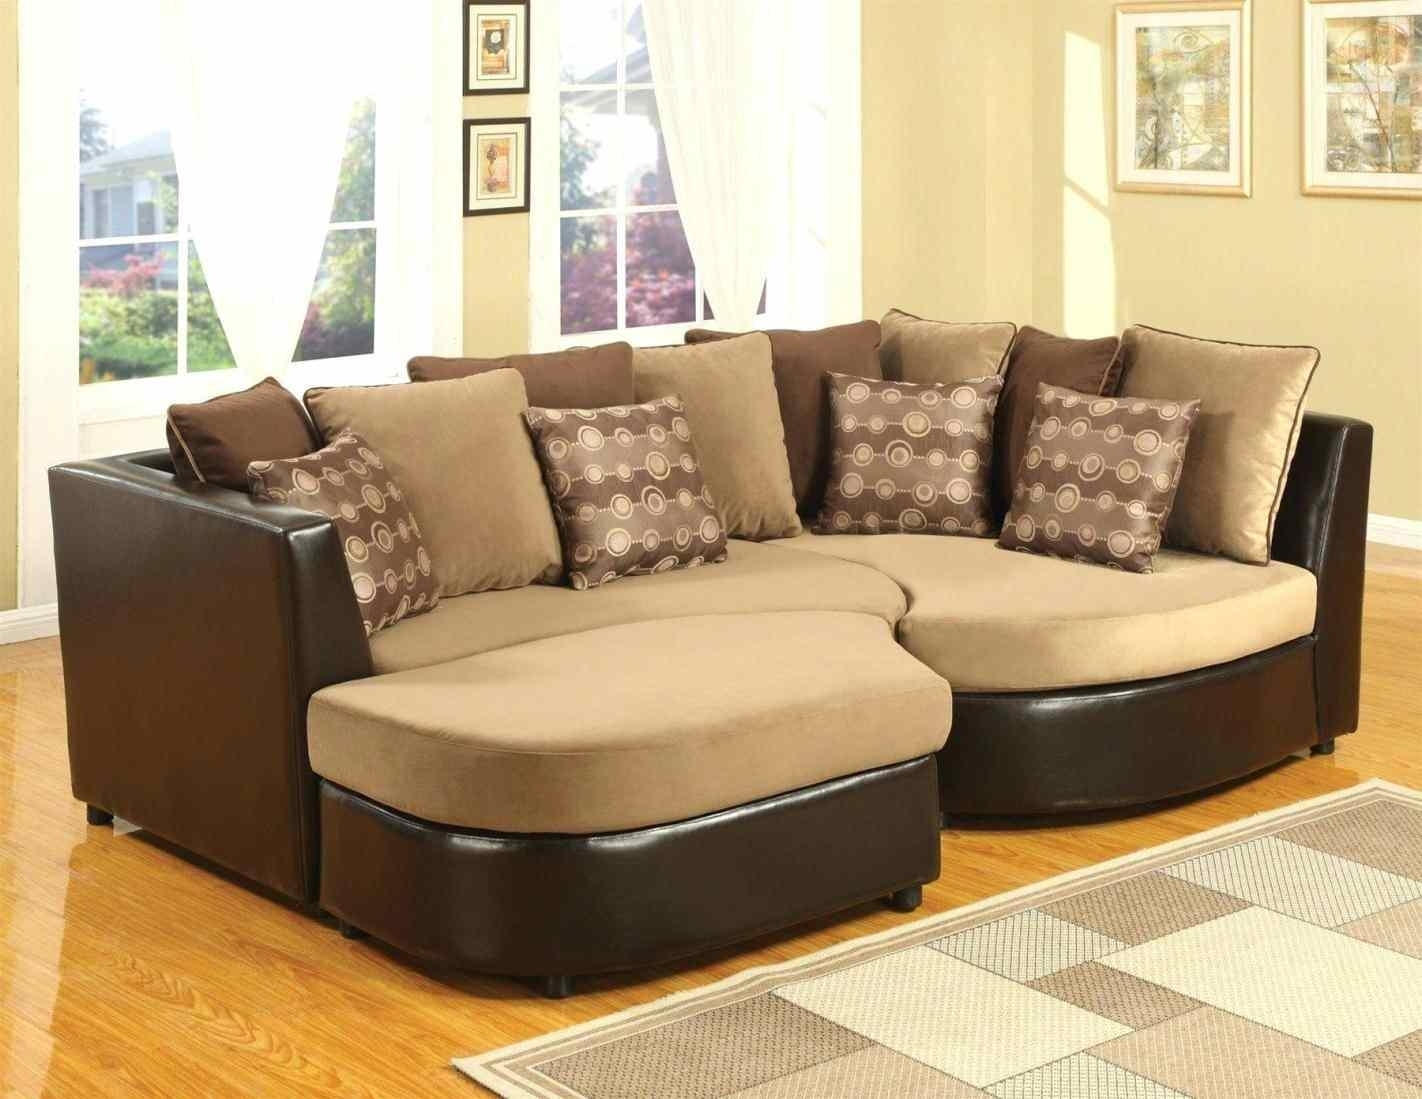 Couch : Furniture Bad Boy Sectional Es Wrap Around Couch Furniture In Sectional Sofas At Bad Boy (View 5 of 15)